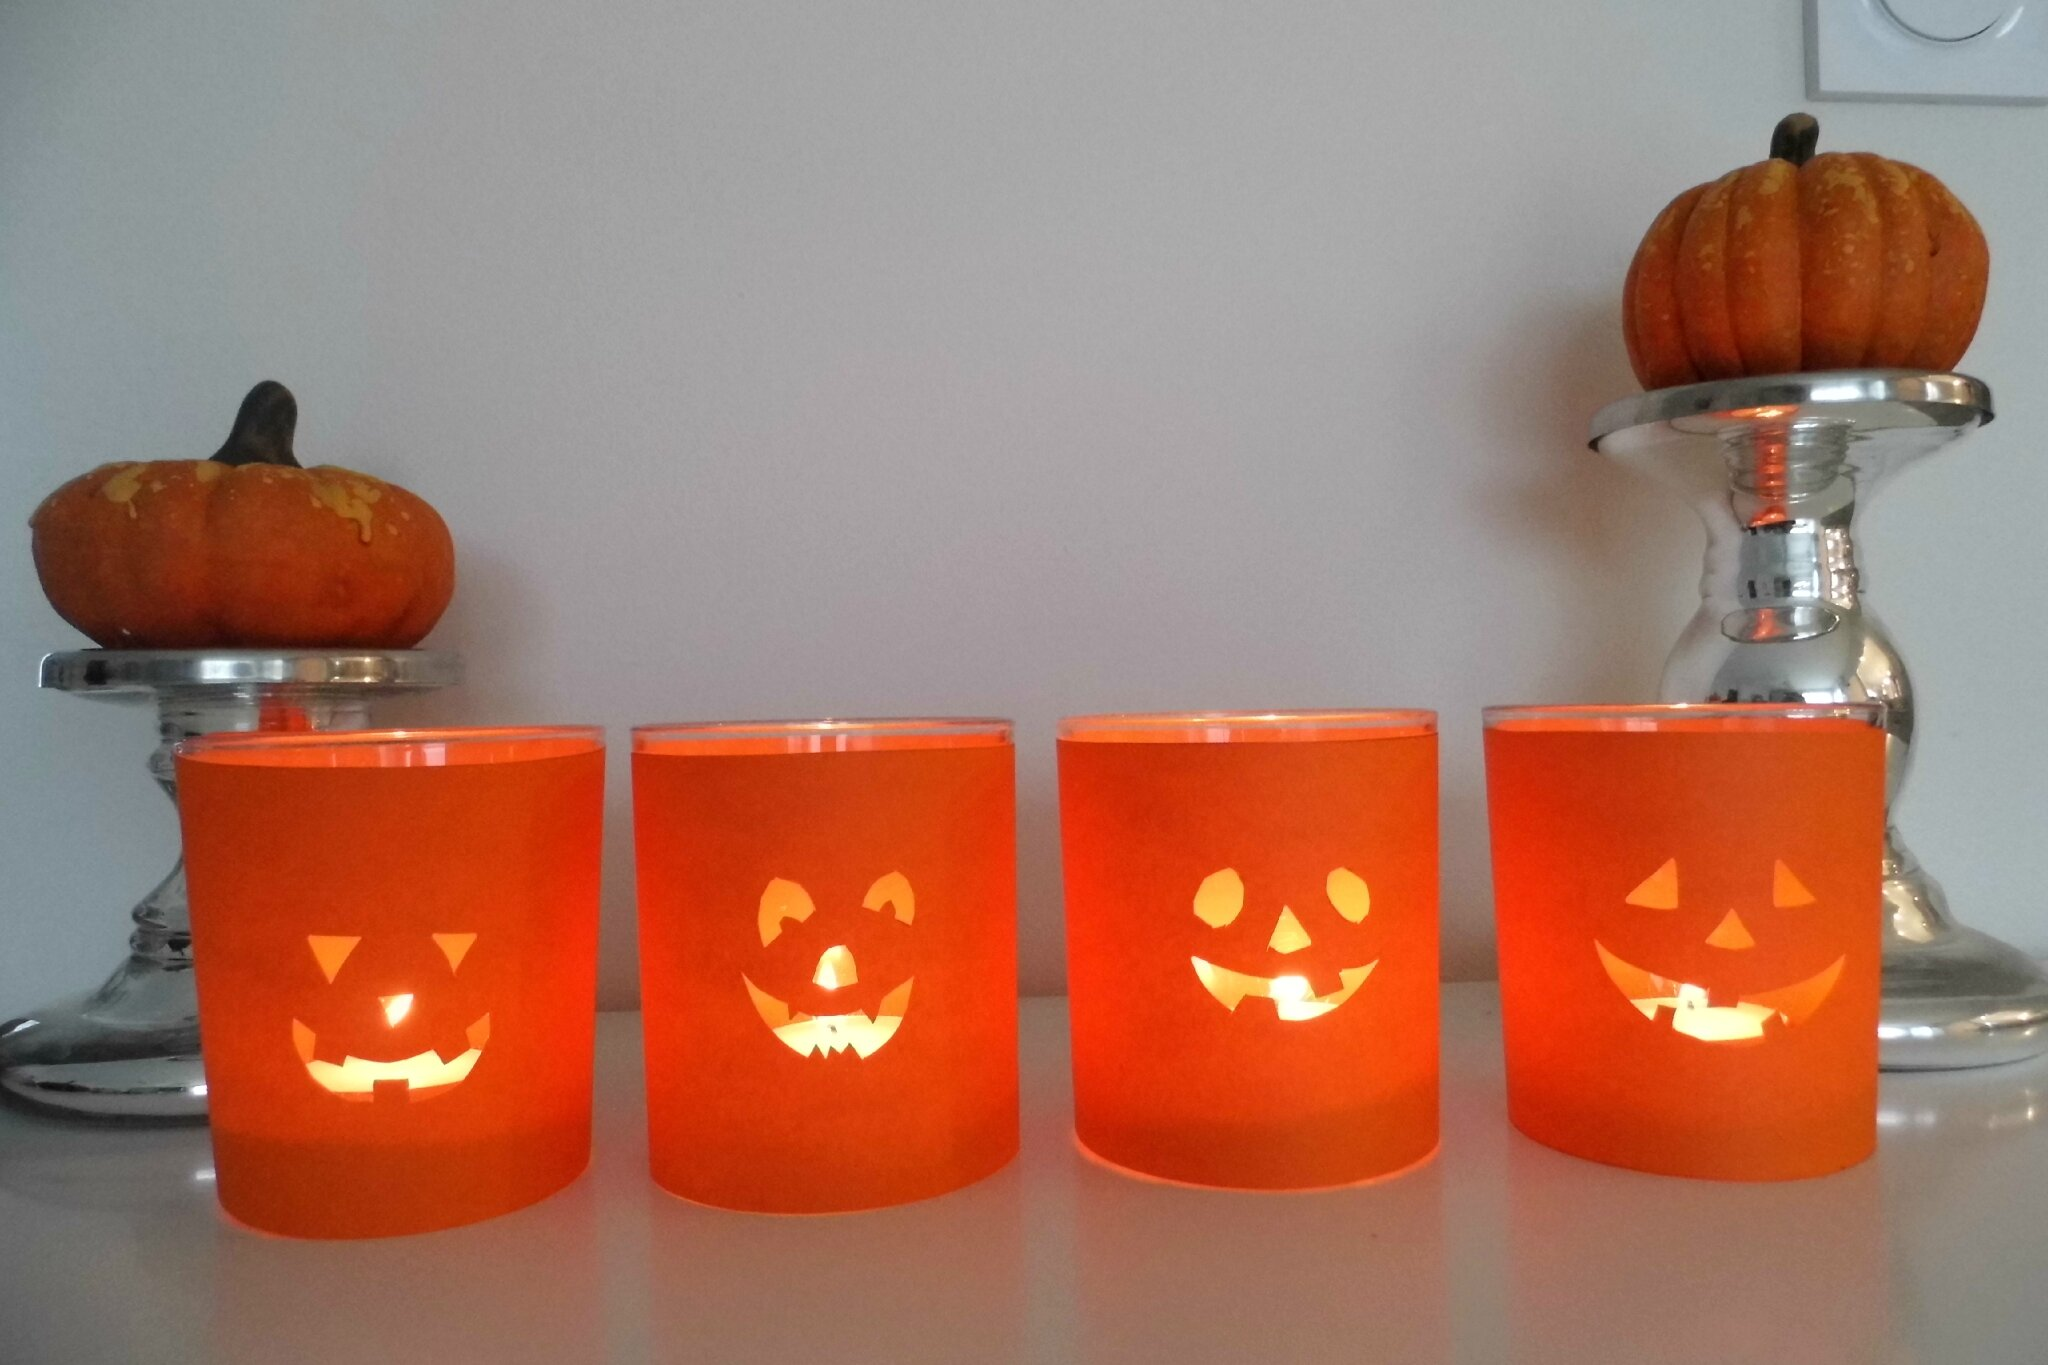 Superb deco halloween a faire sois meme 14 id e de d co for Idee deco halloween